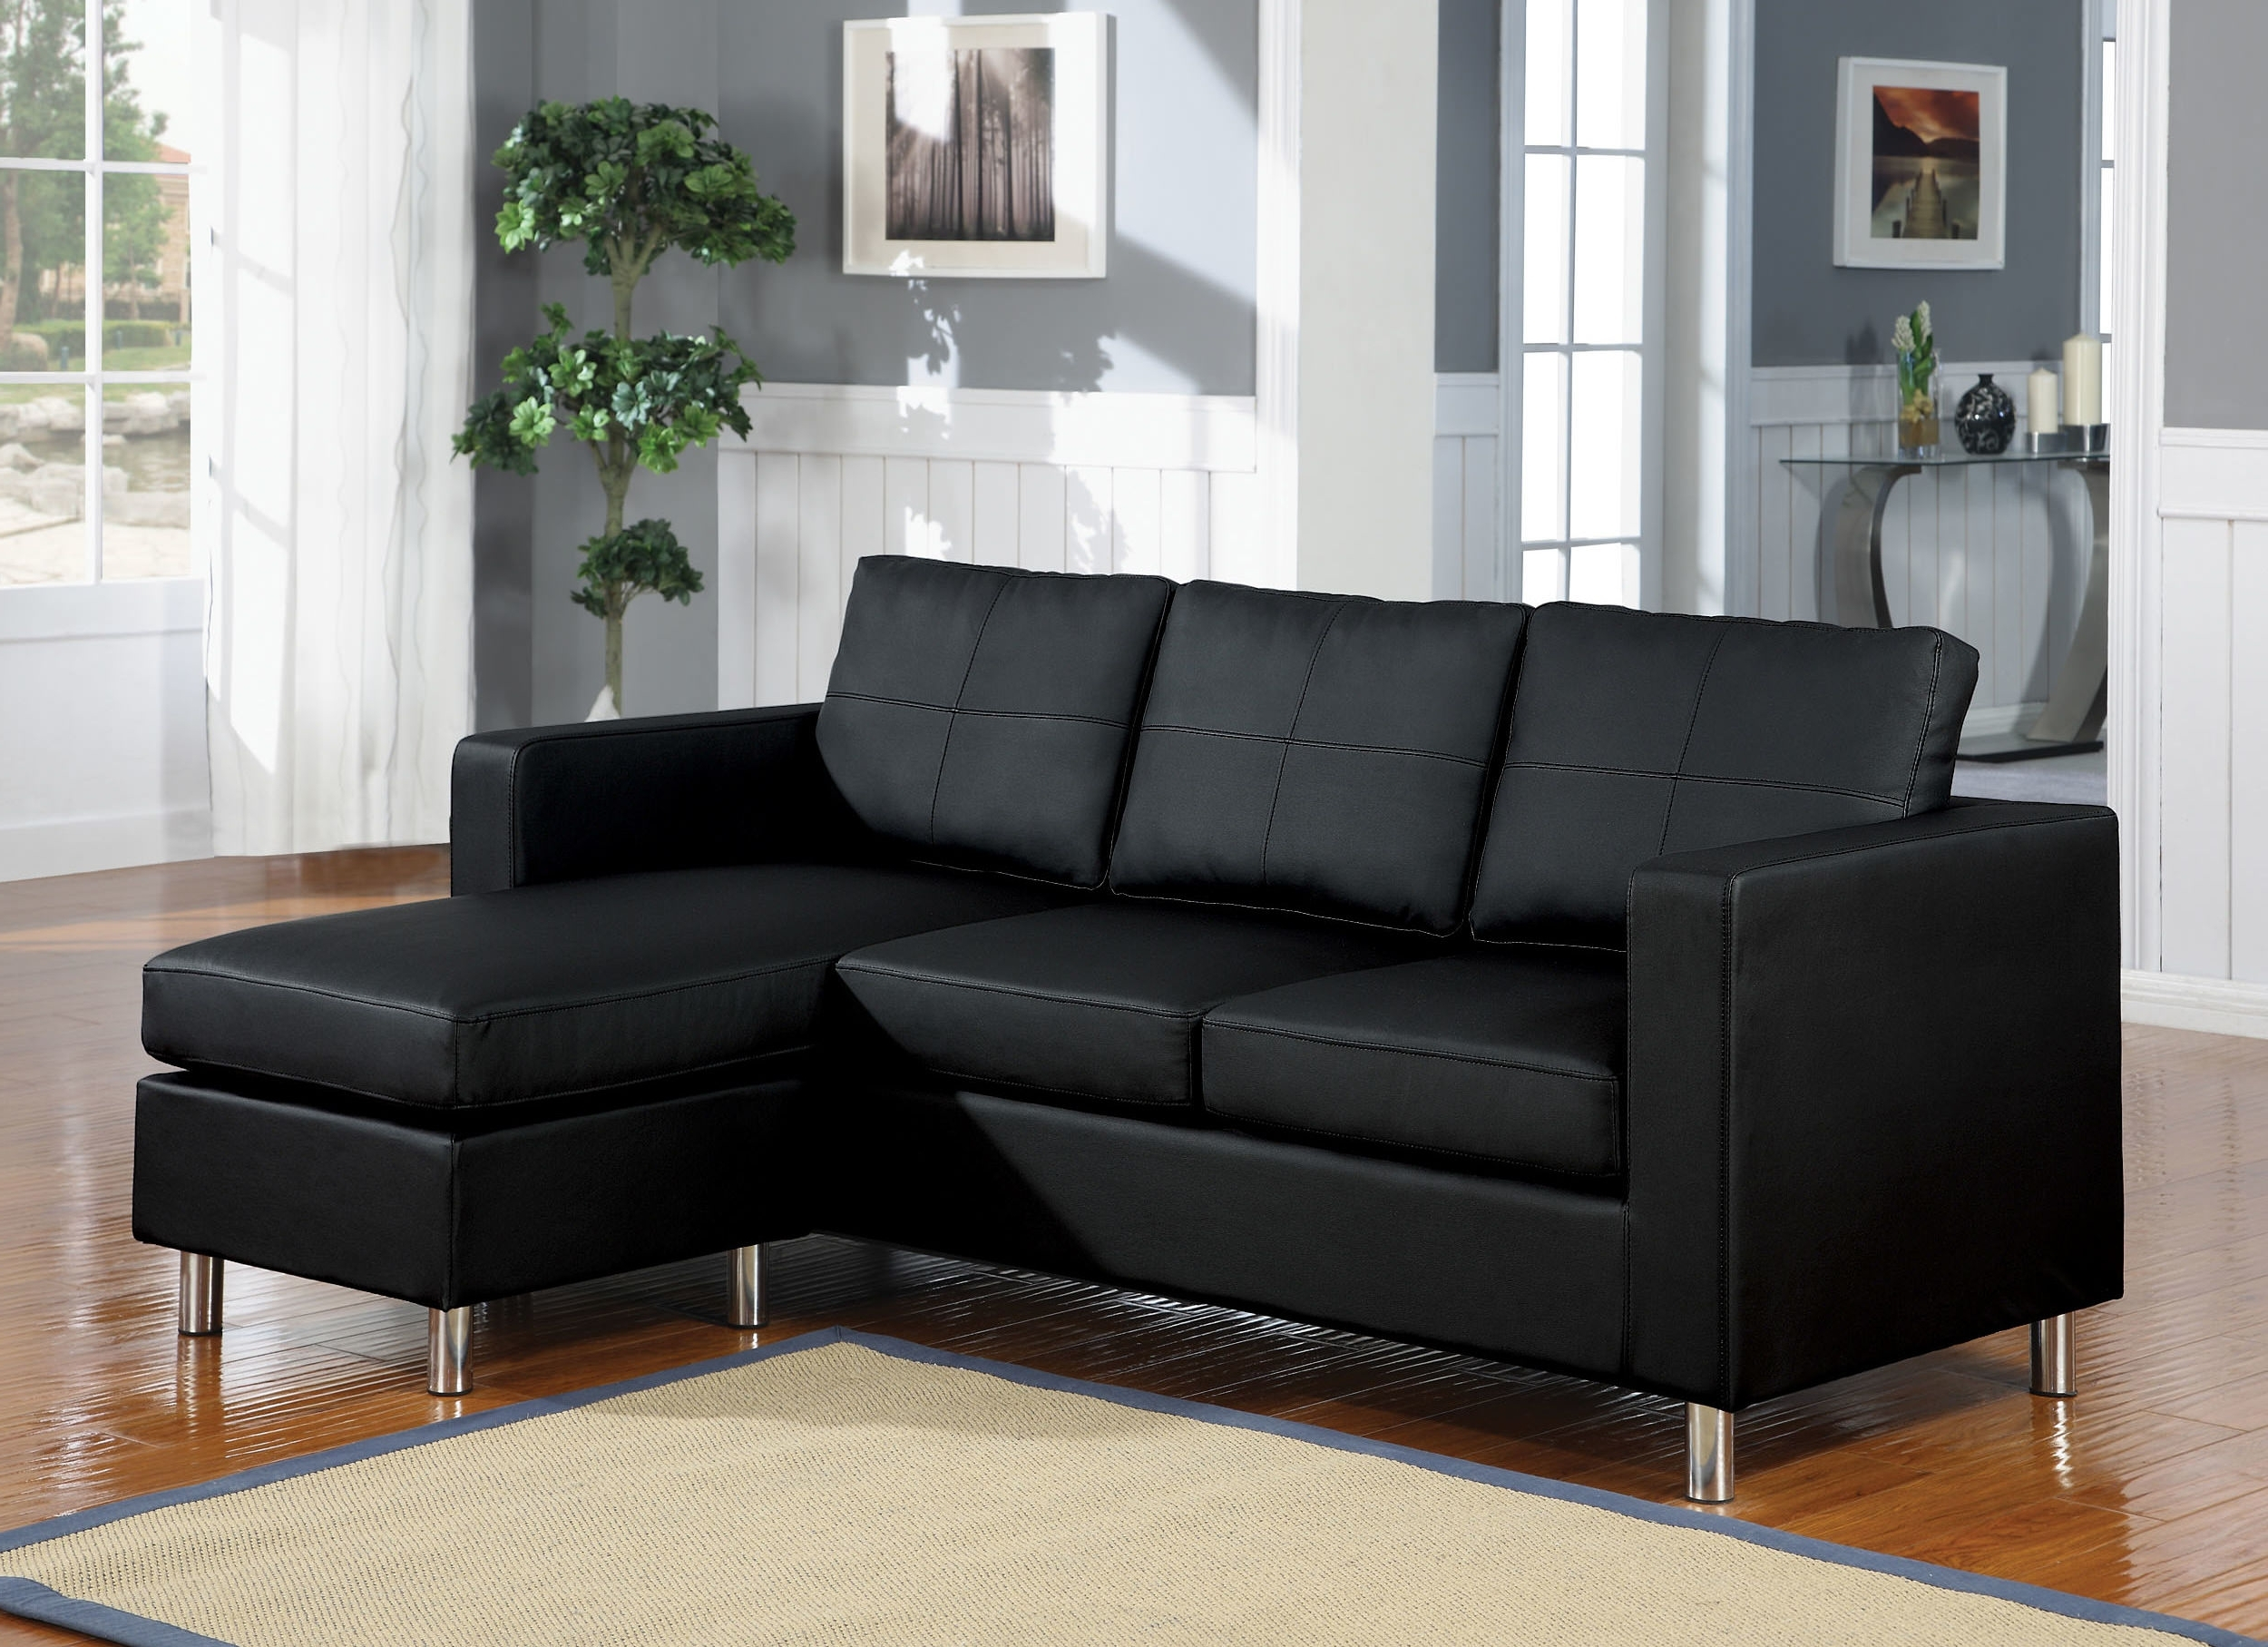 Design Intended For Leather Modular Sectional Sofas (View 2 of 20)